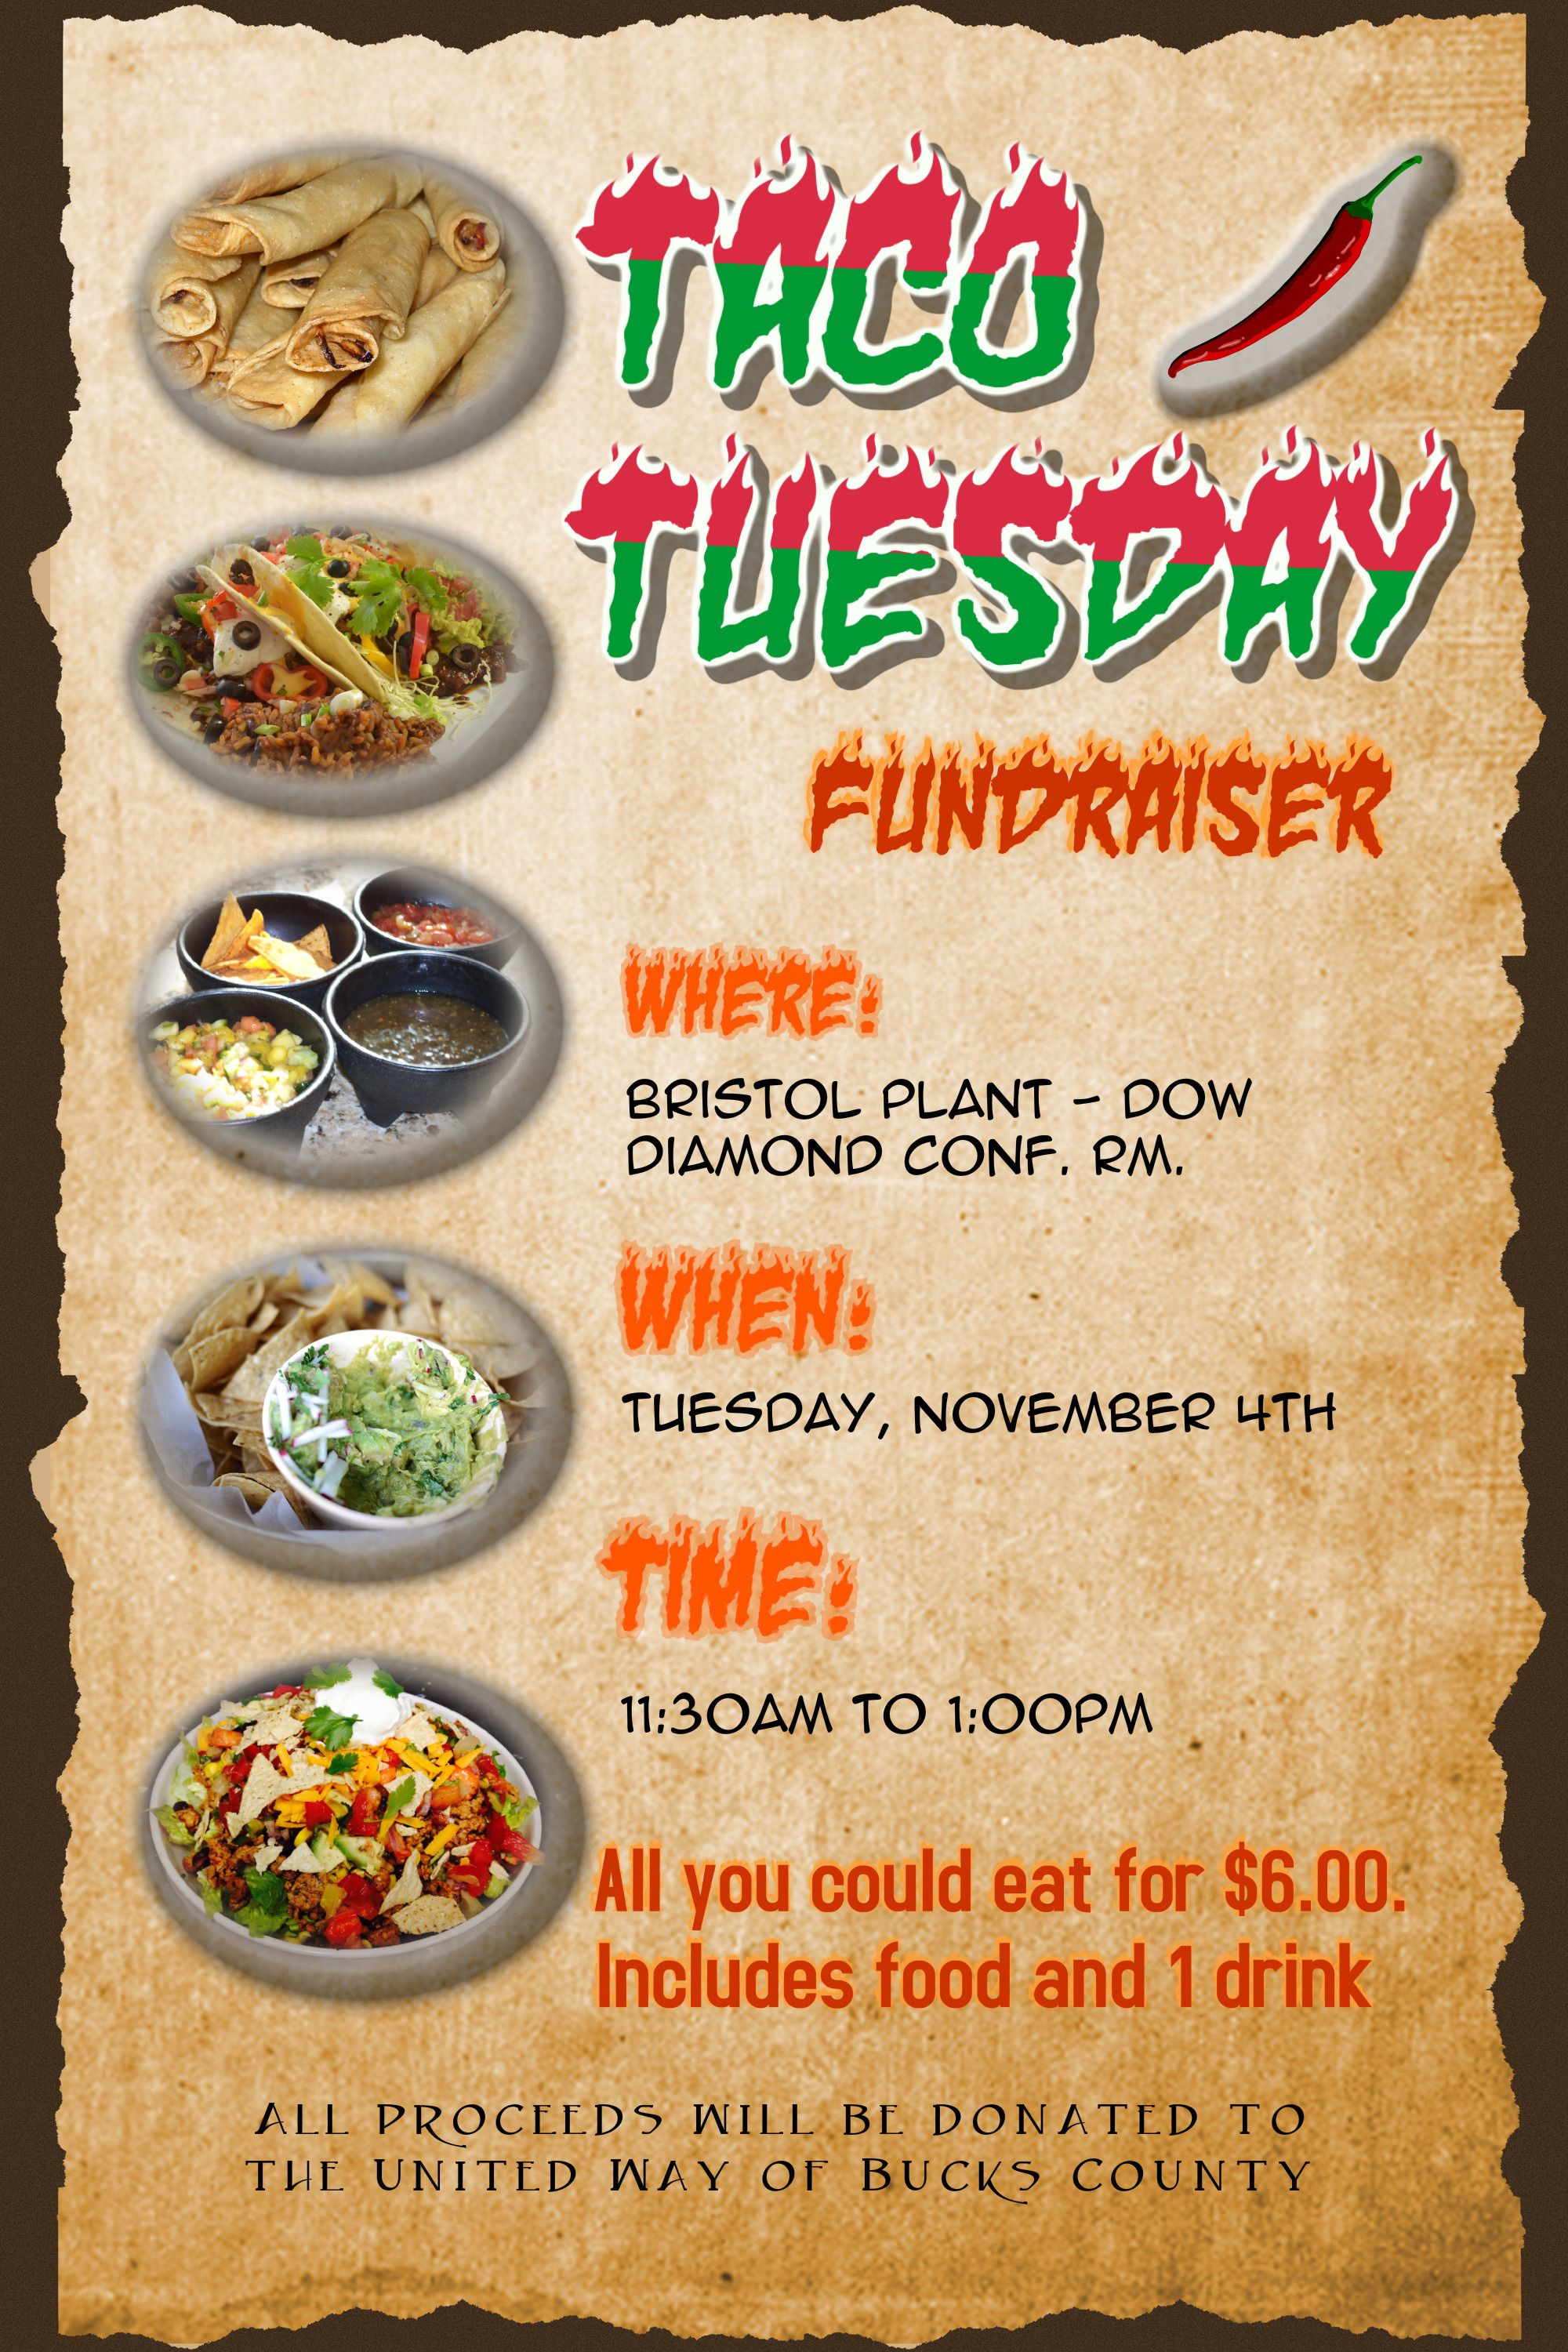 Fundraising Taco Tuesday Flyer For United Way  Cards Invites